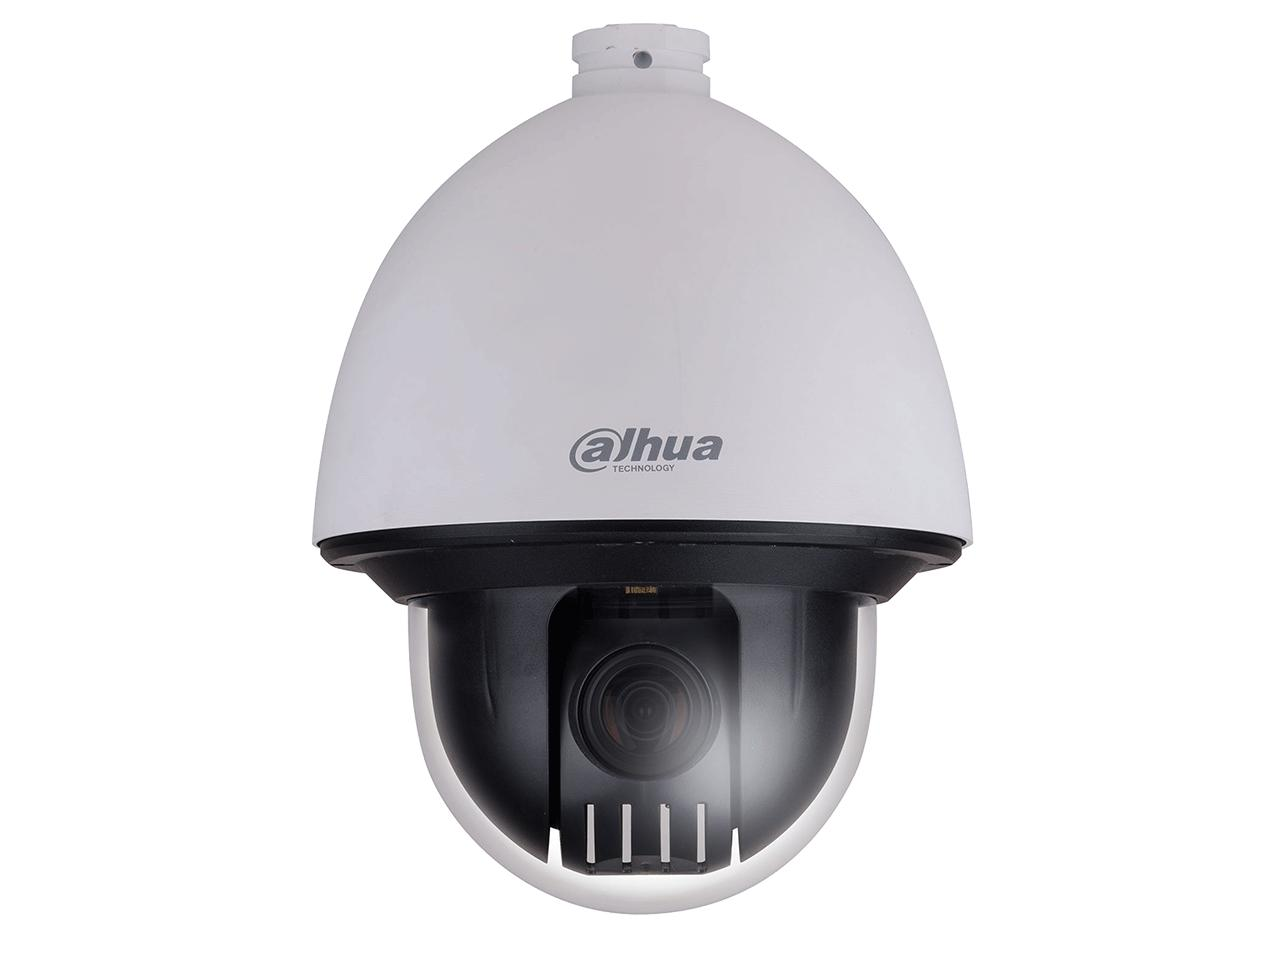 DAHUA SD60430U-HNI 4 MEGAPİKSEL 30 OPTİK WDR SPEED DOME IP KAMERA